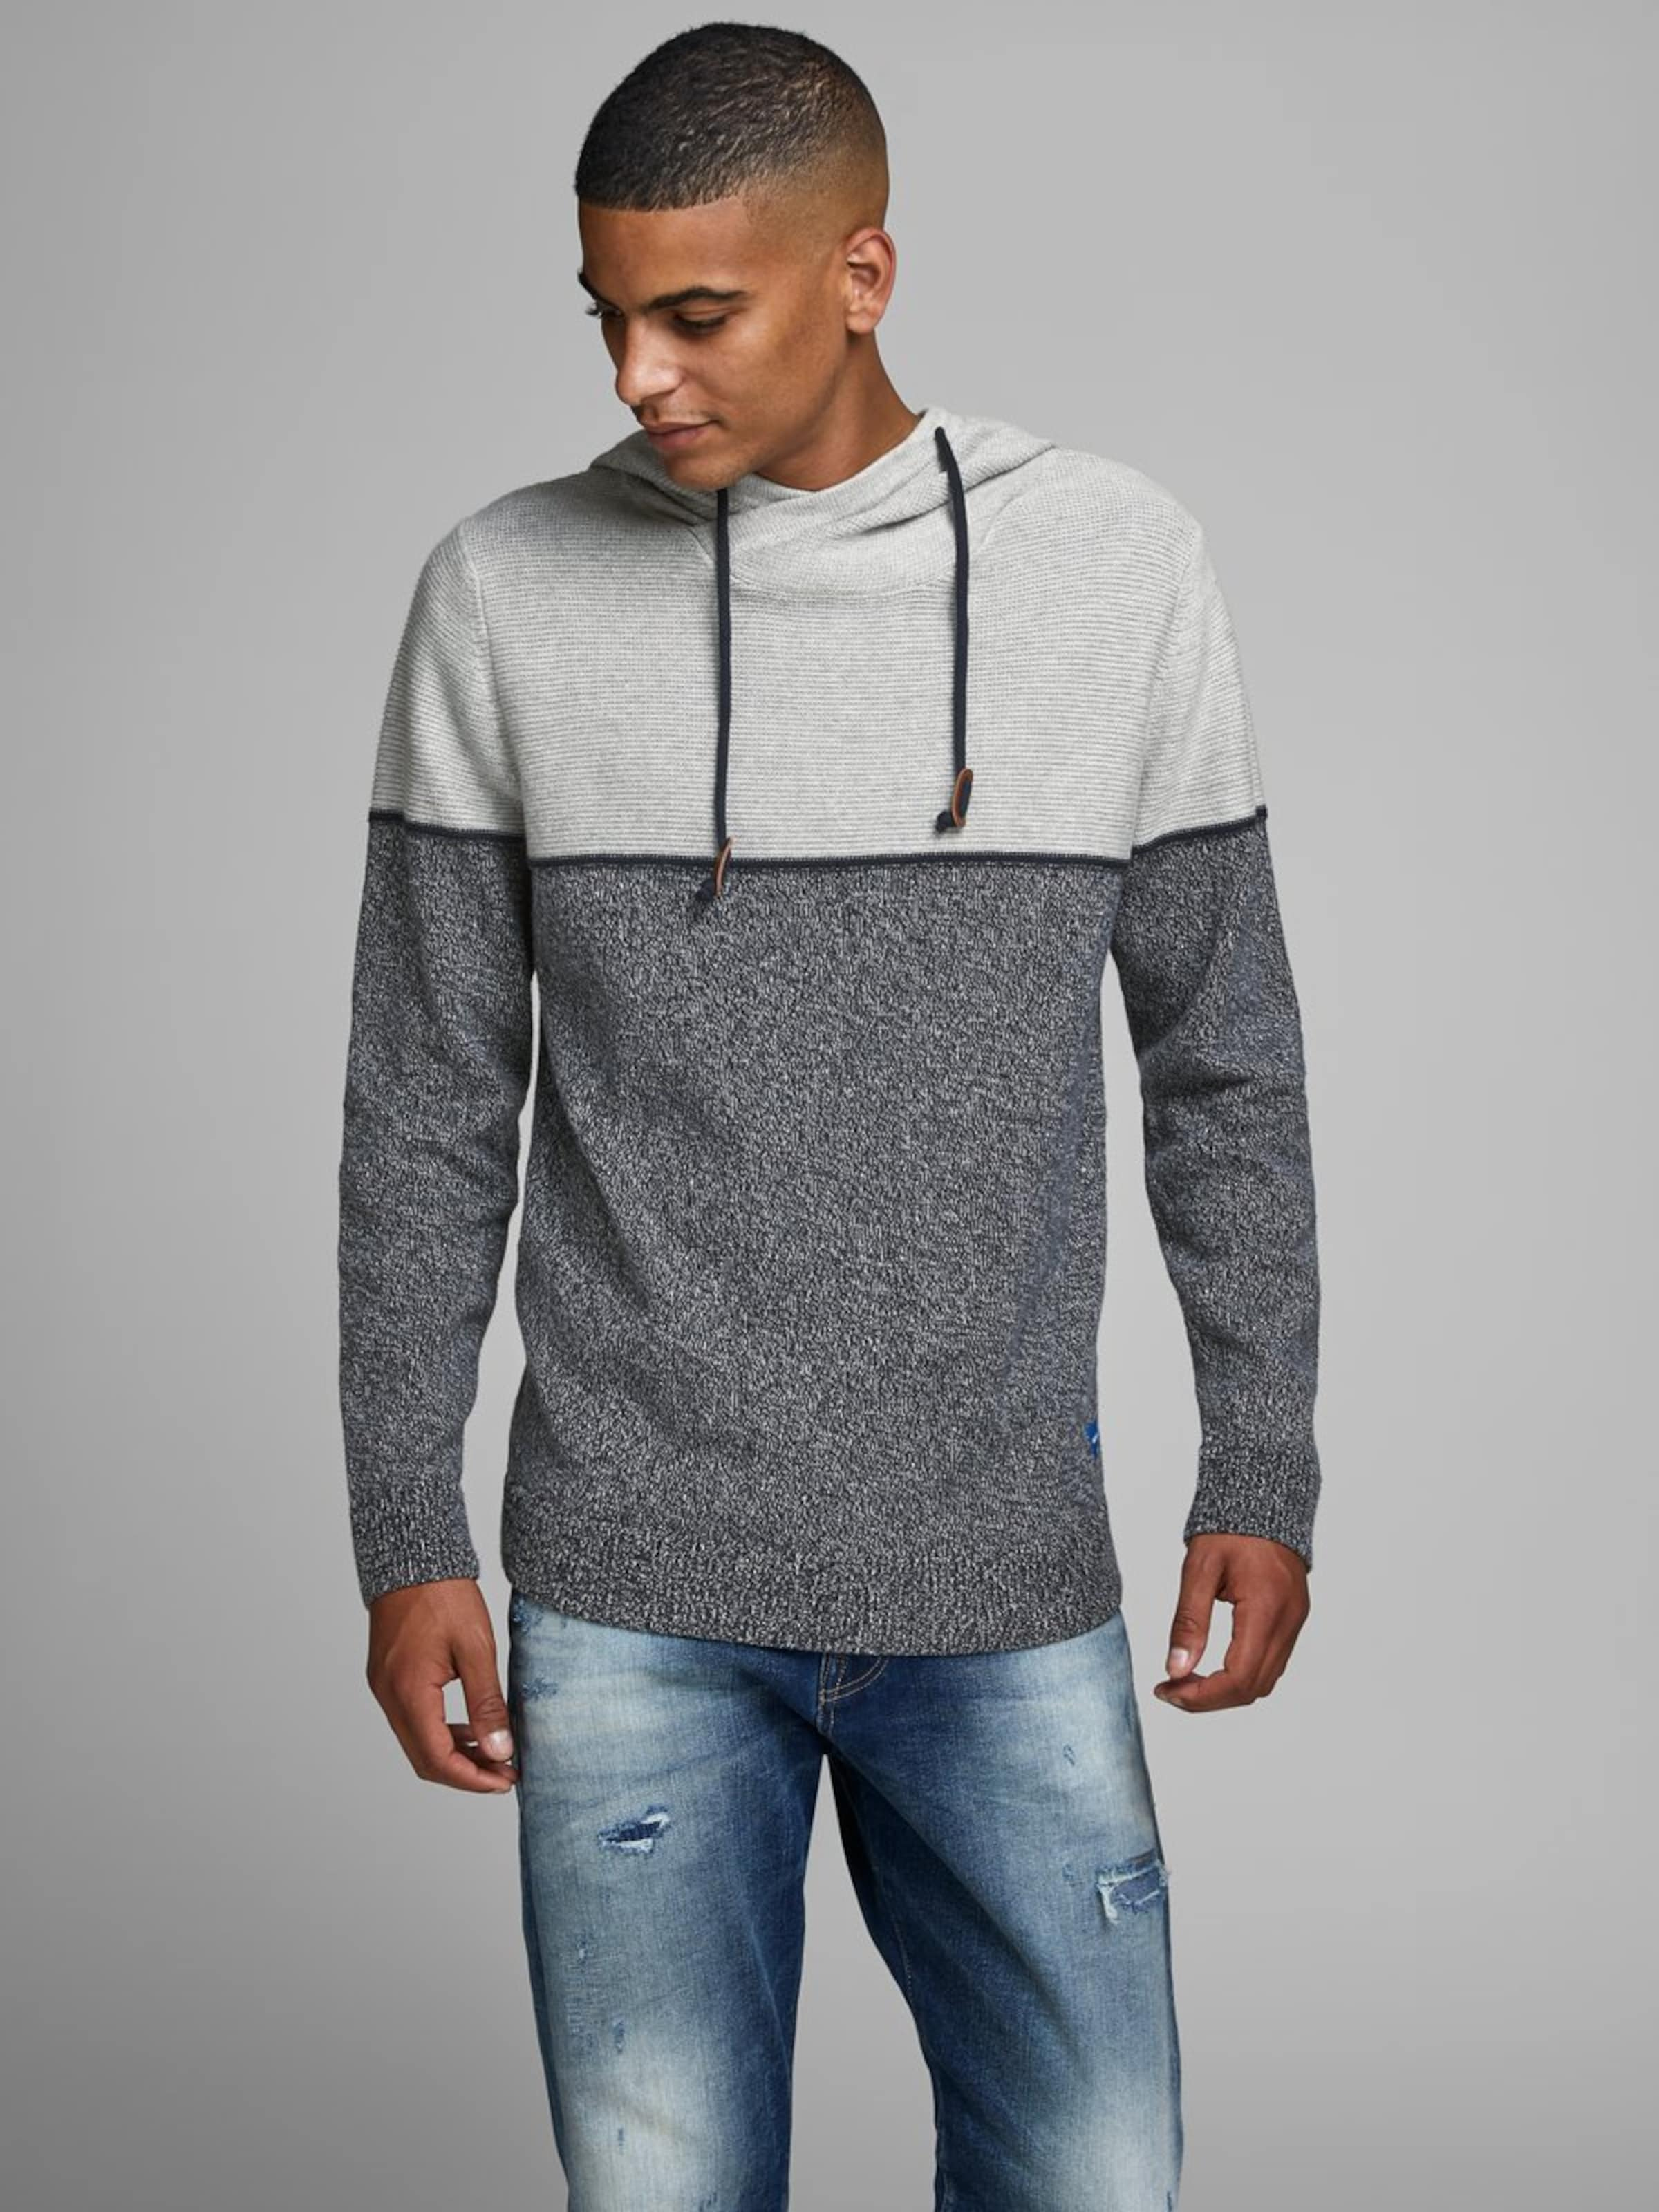 FoncéBordeaux En Sweat Jackamp; 'colourblocking' Bleu shirt Jones 5jSAqRc34L